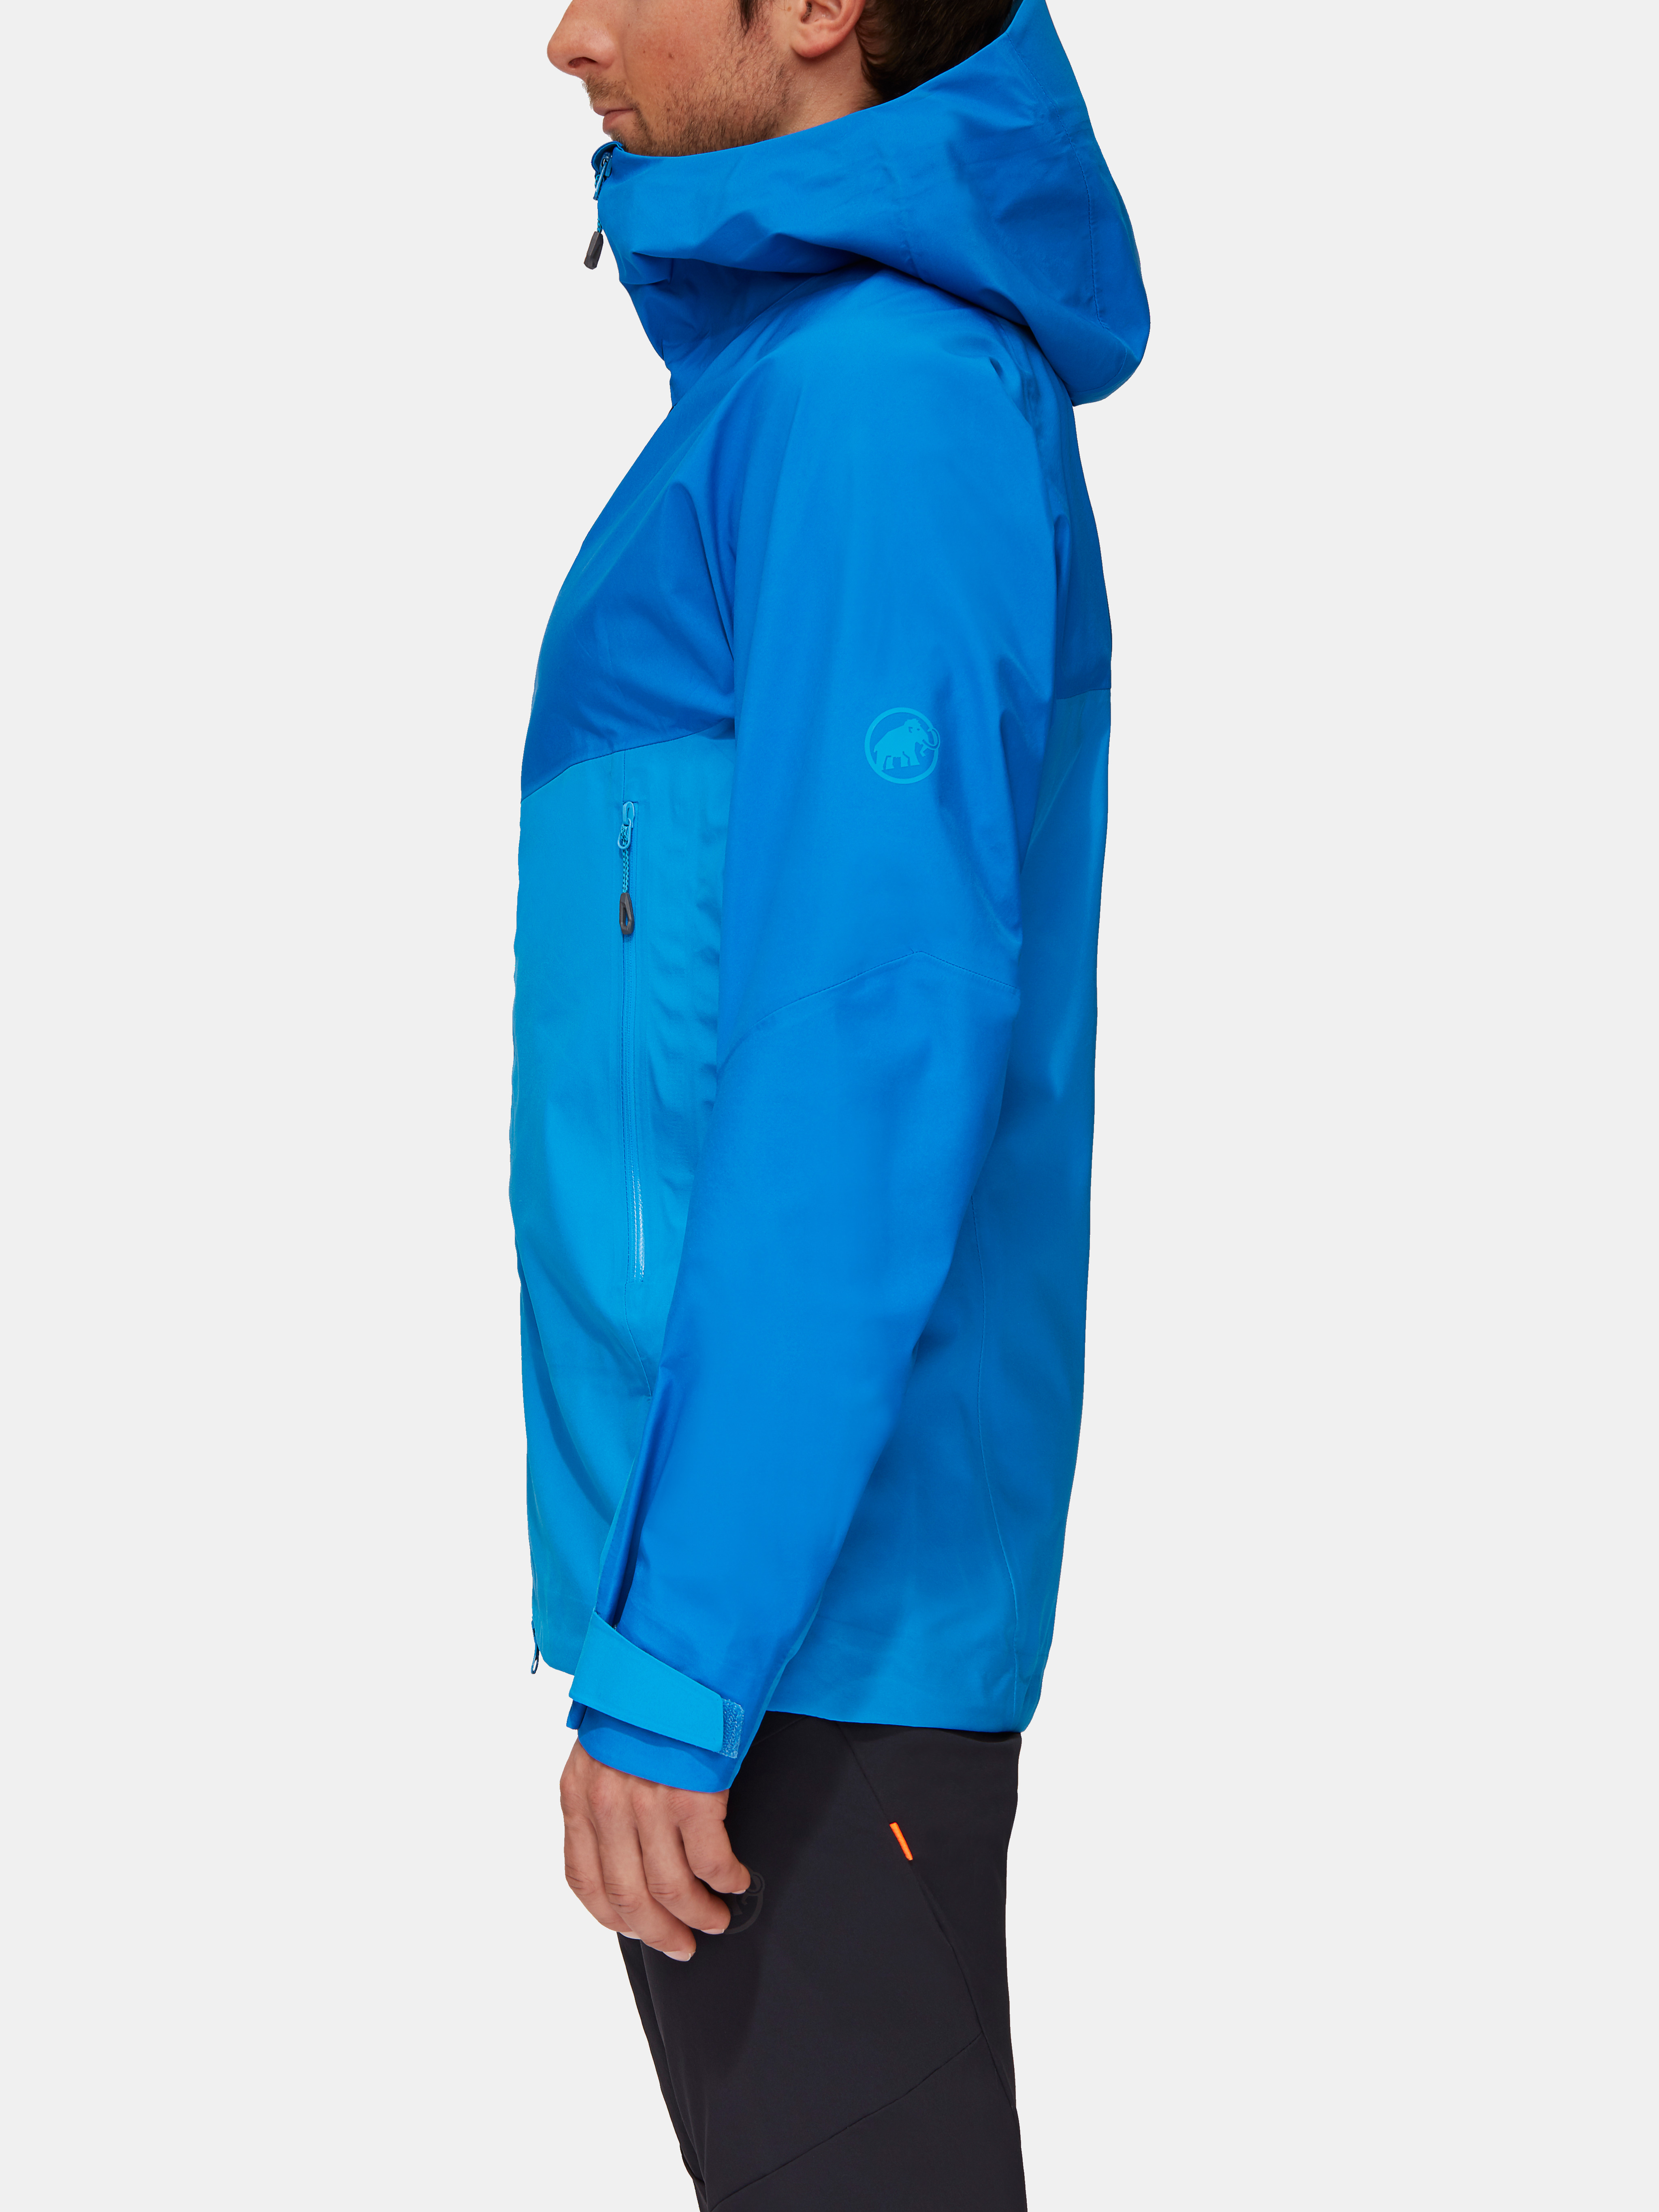 Crater HS Hooded Jacket Men product image